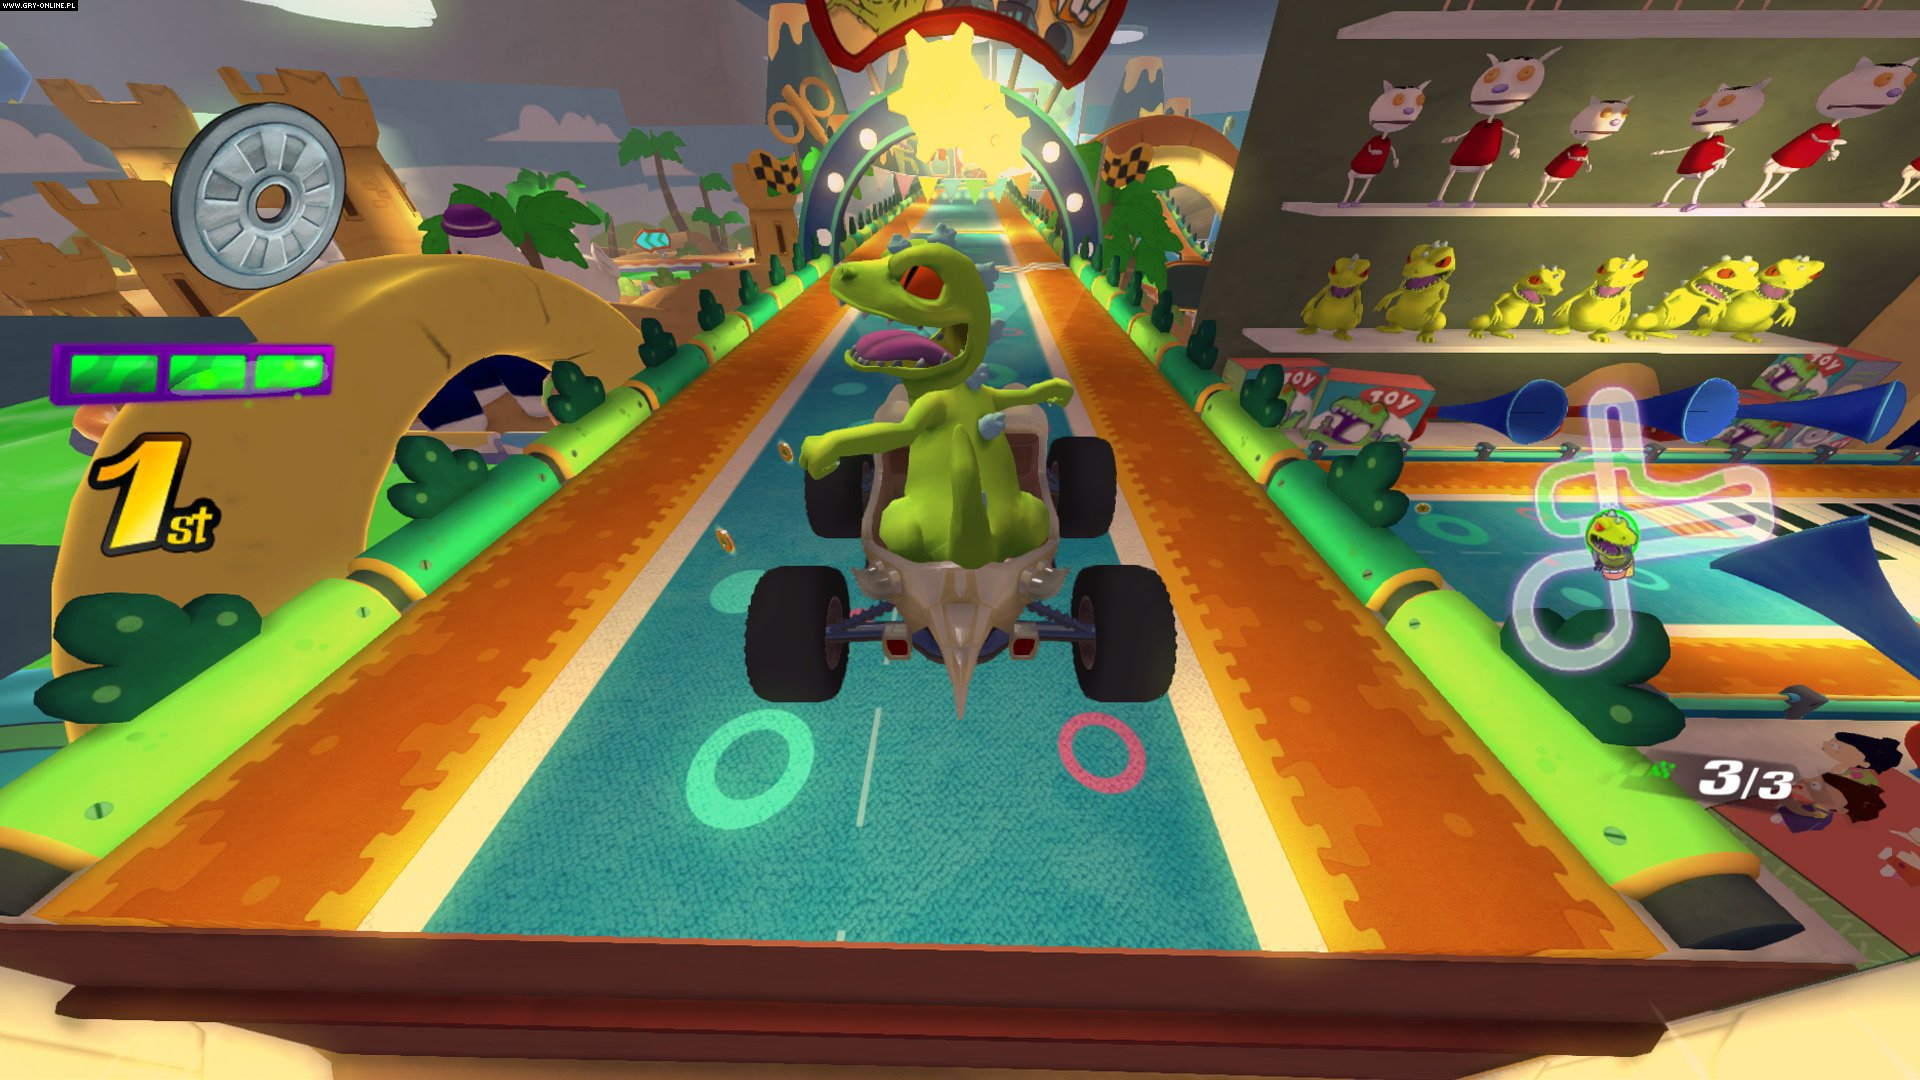 Nickelodeon Kart Racers PS4, XONE, Switch Gry Screen 12/12, GameMill Entertainment